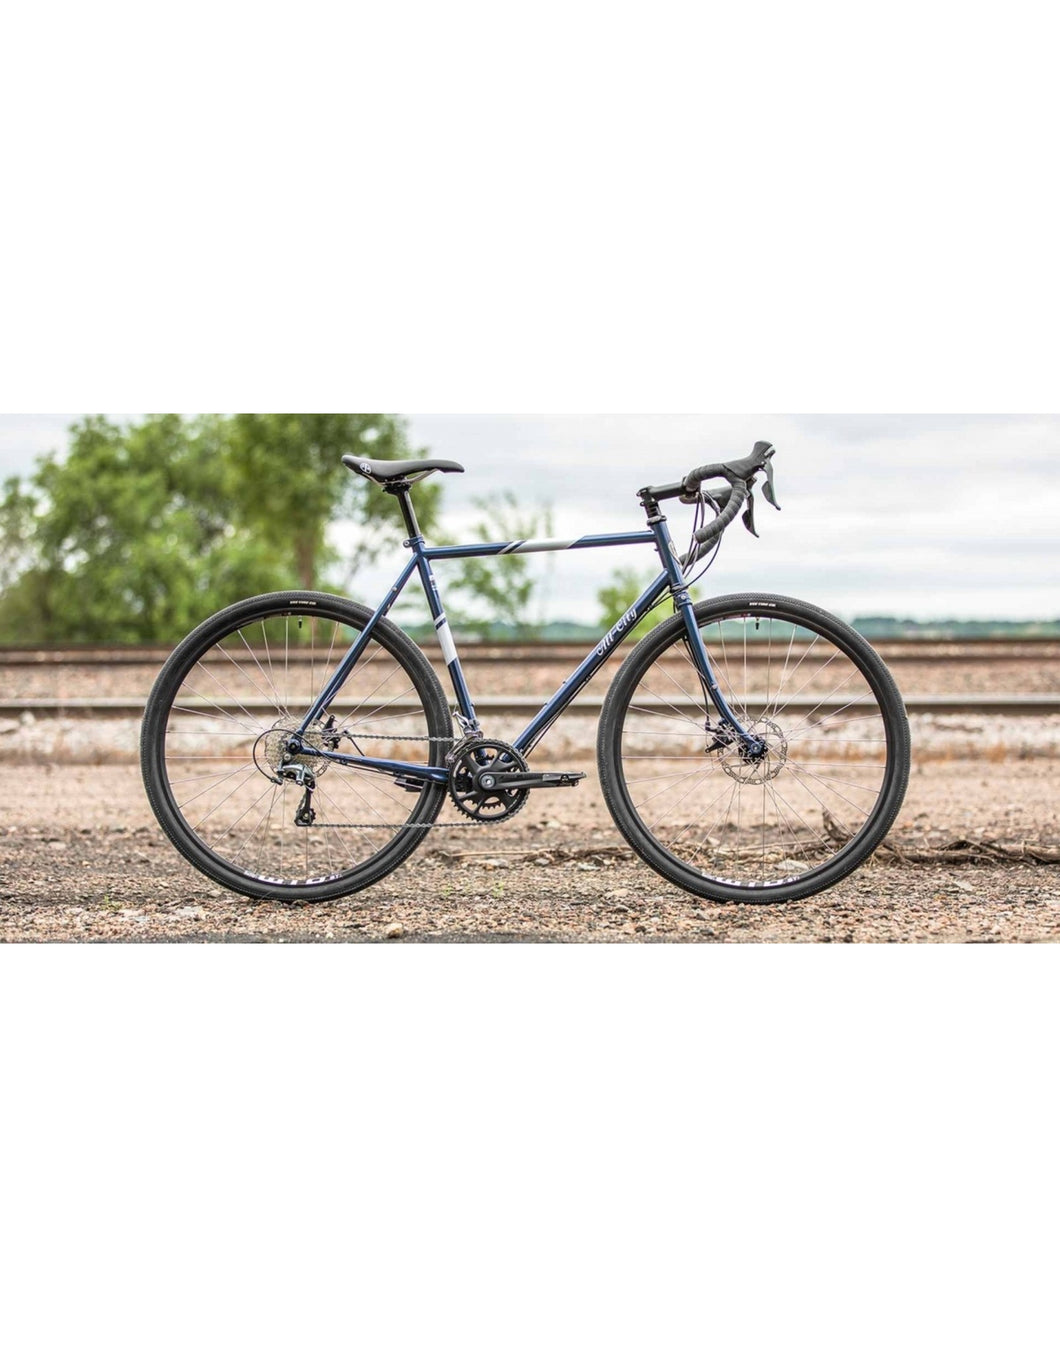 All-City Space Horse Bike - Tiagra, Neptune Blue, Steel